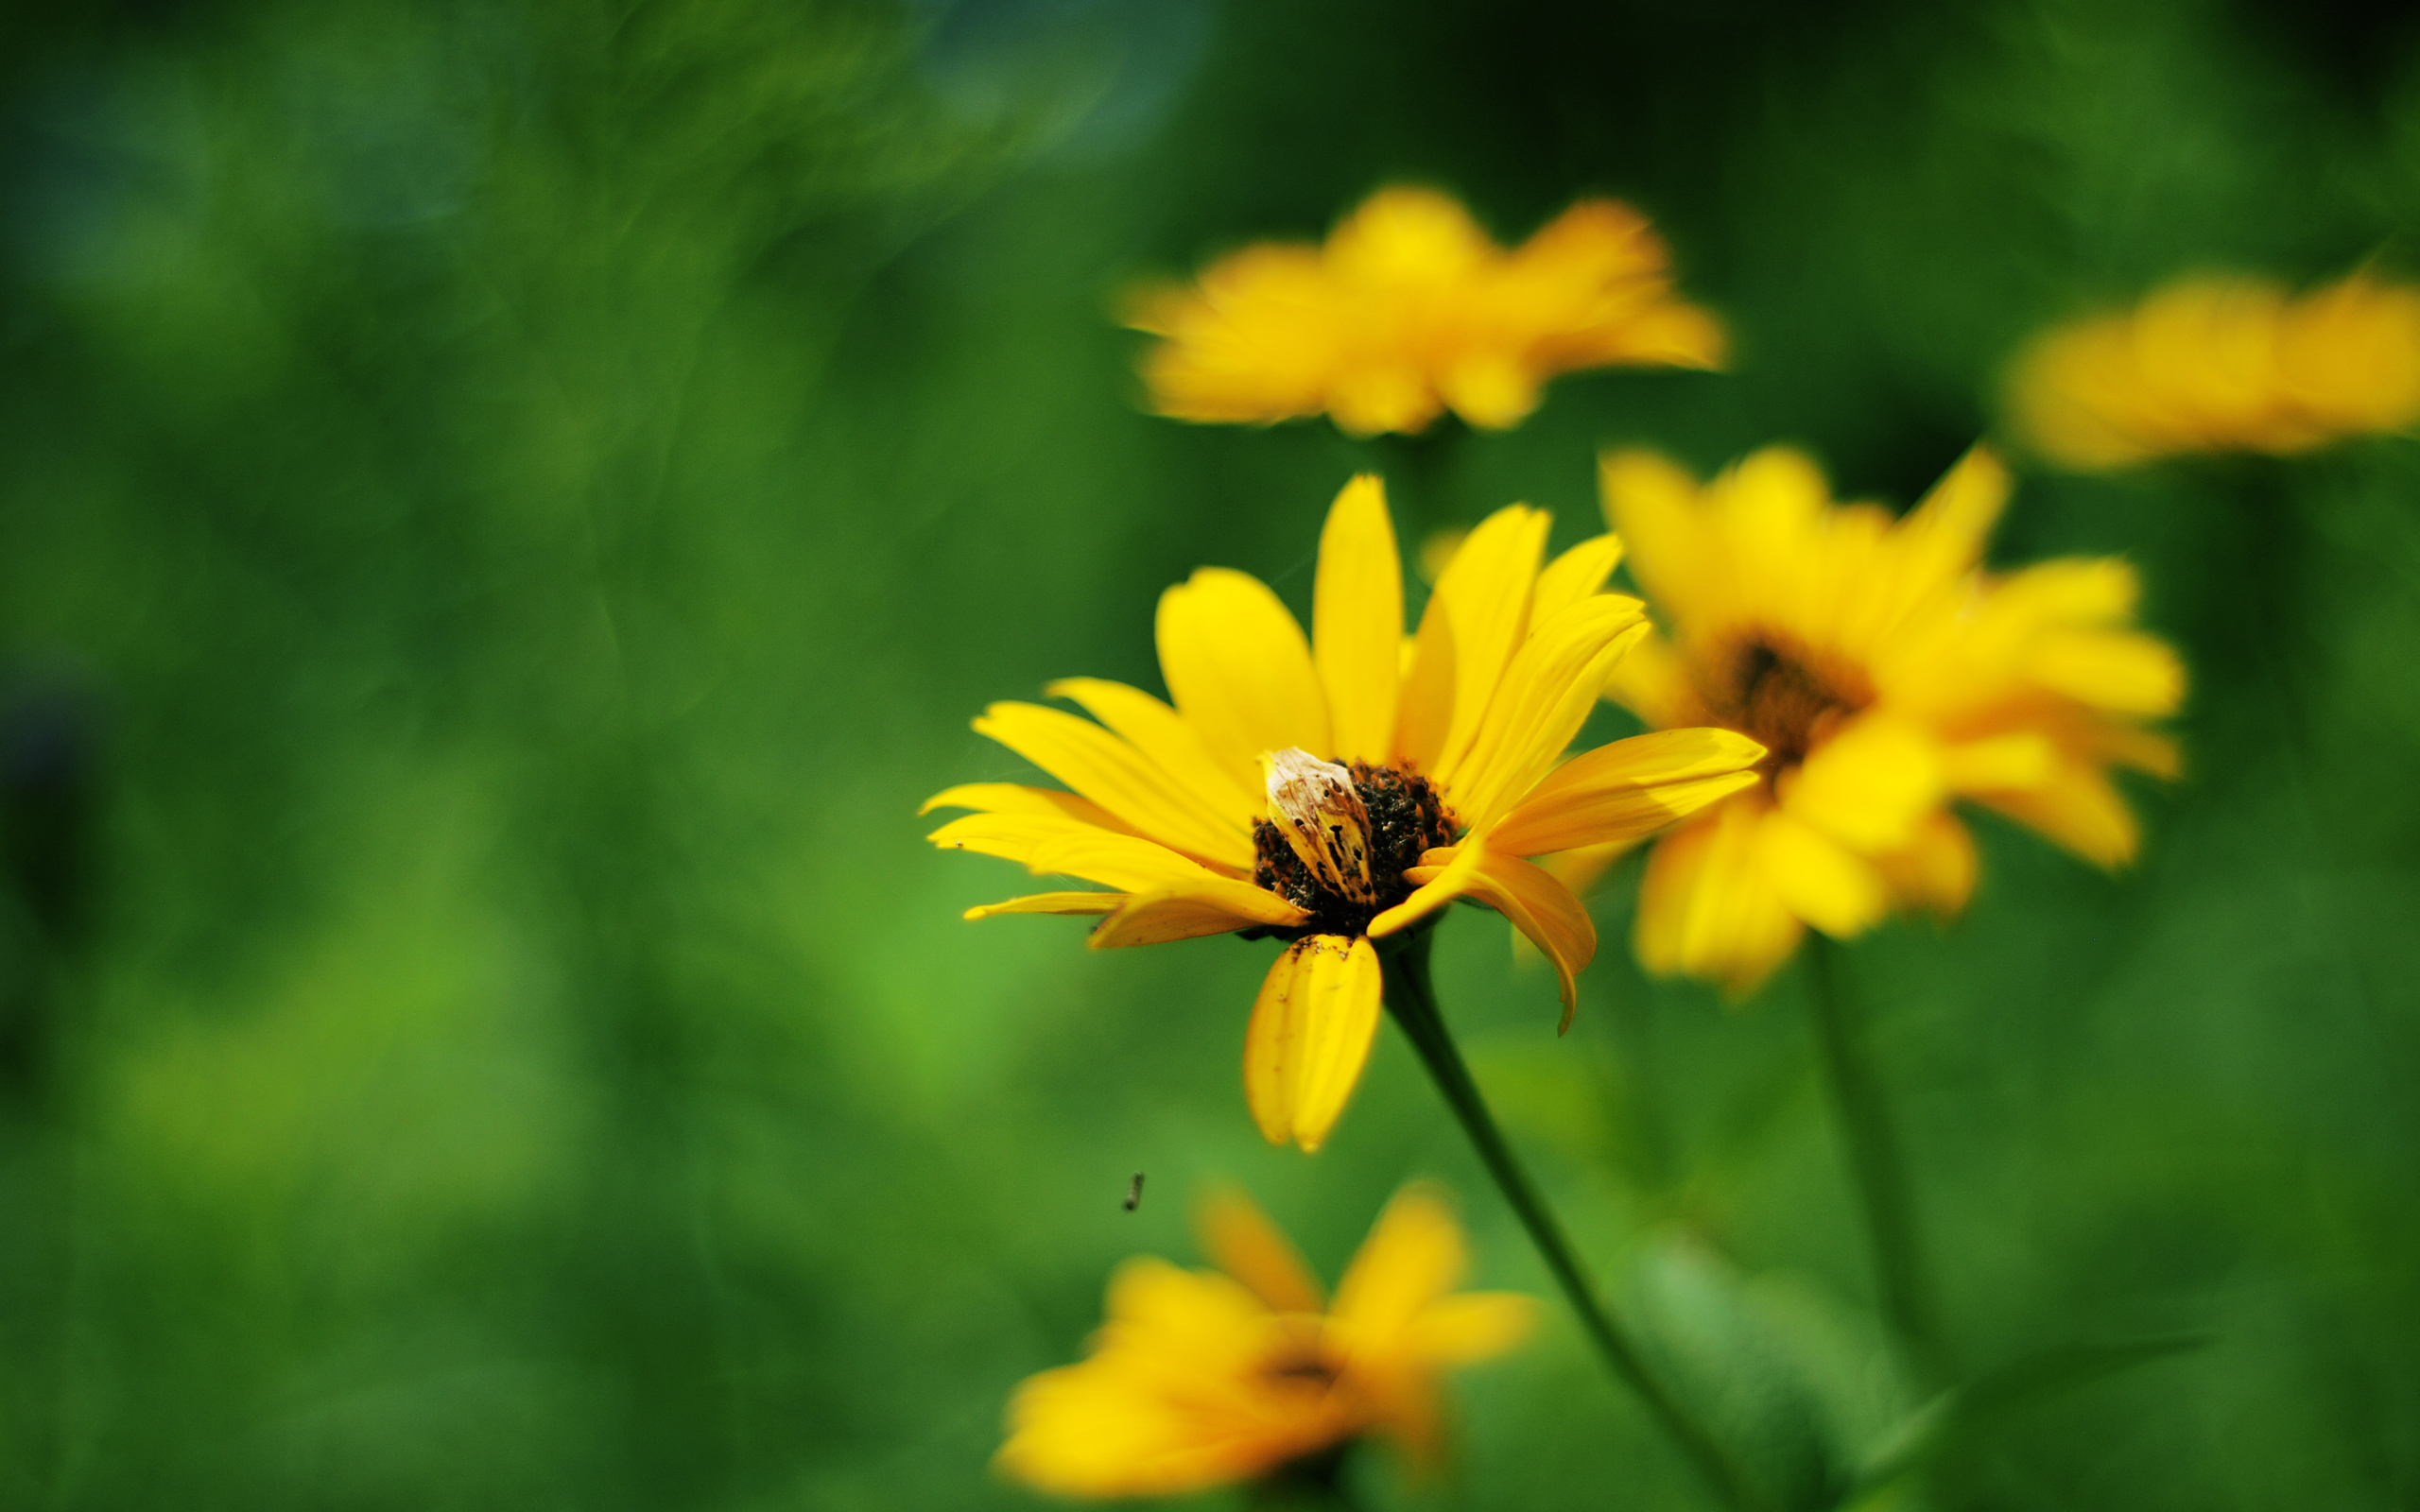 Yellow Summer Flowers 286.77 Kb